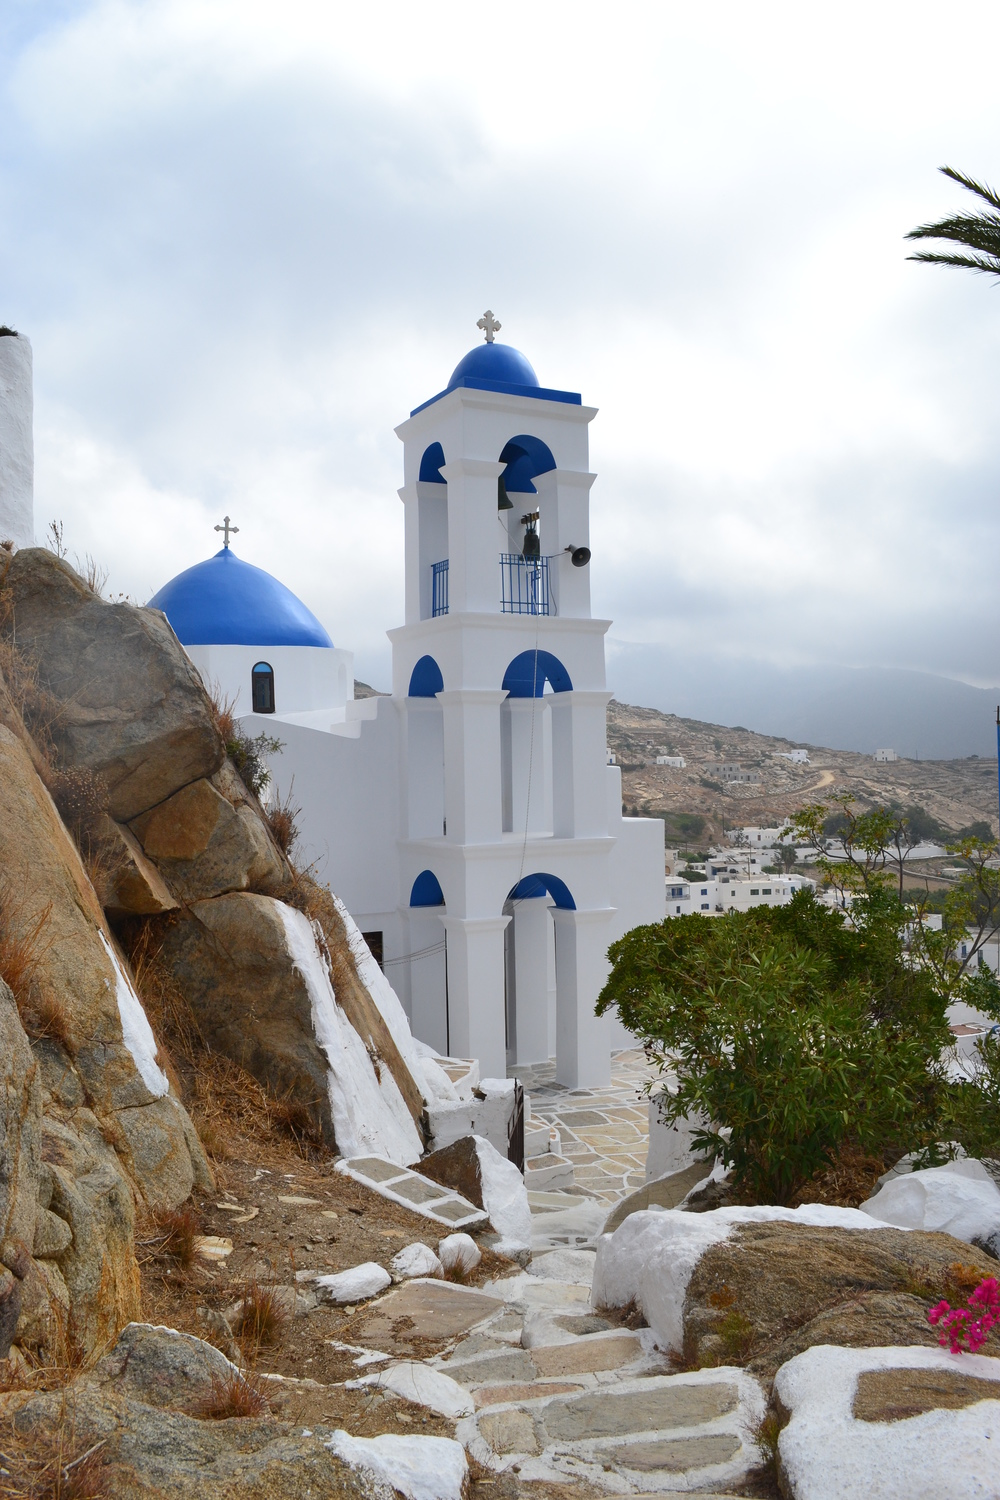 Panagia Gremiotissa - The church of Virgin Mary Gremiotissa is the trademark of the island.